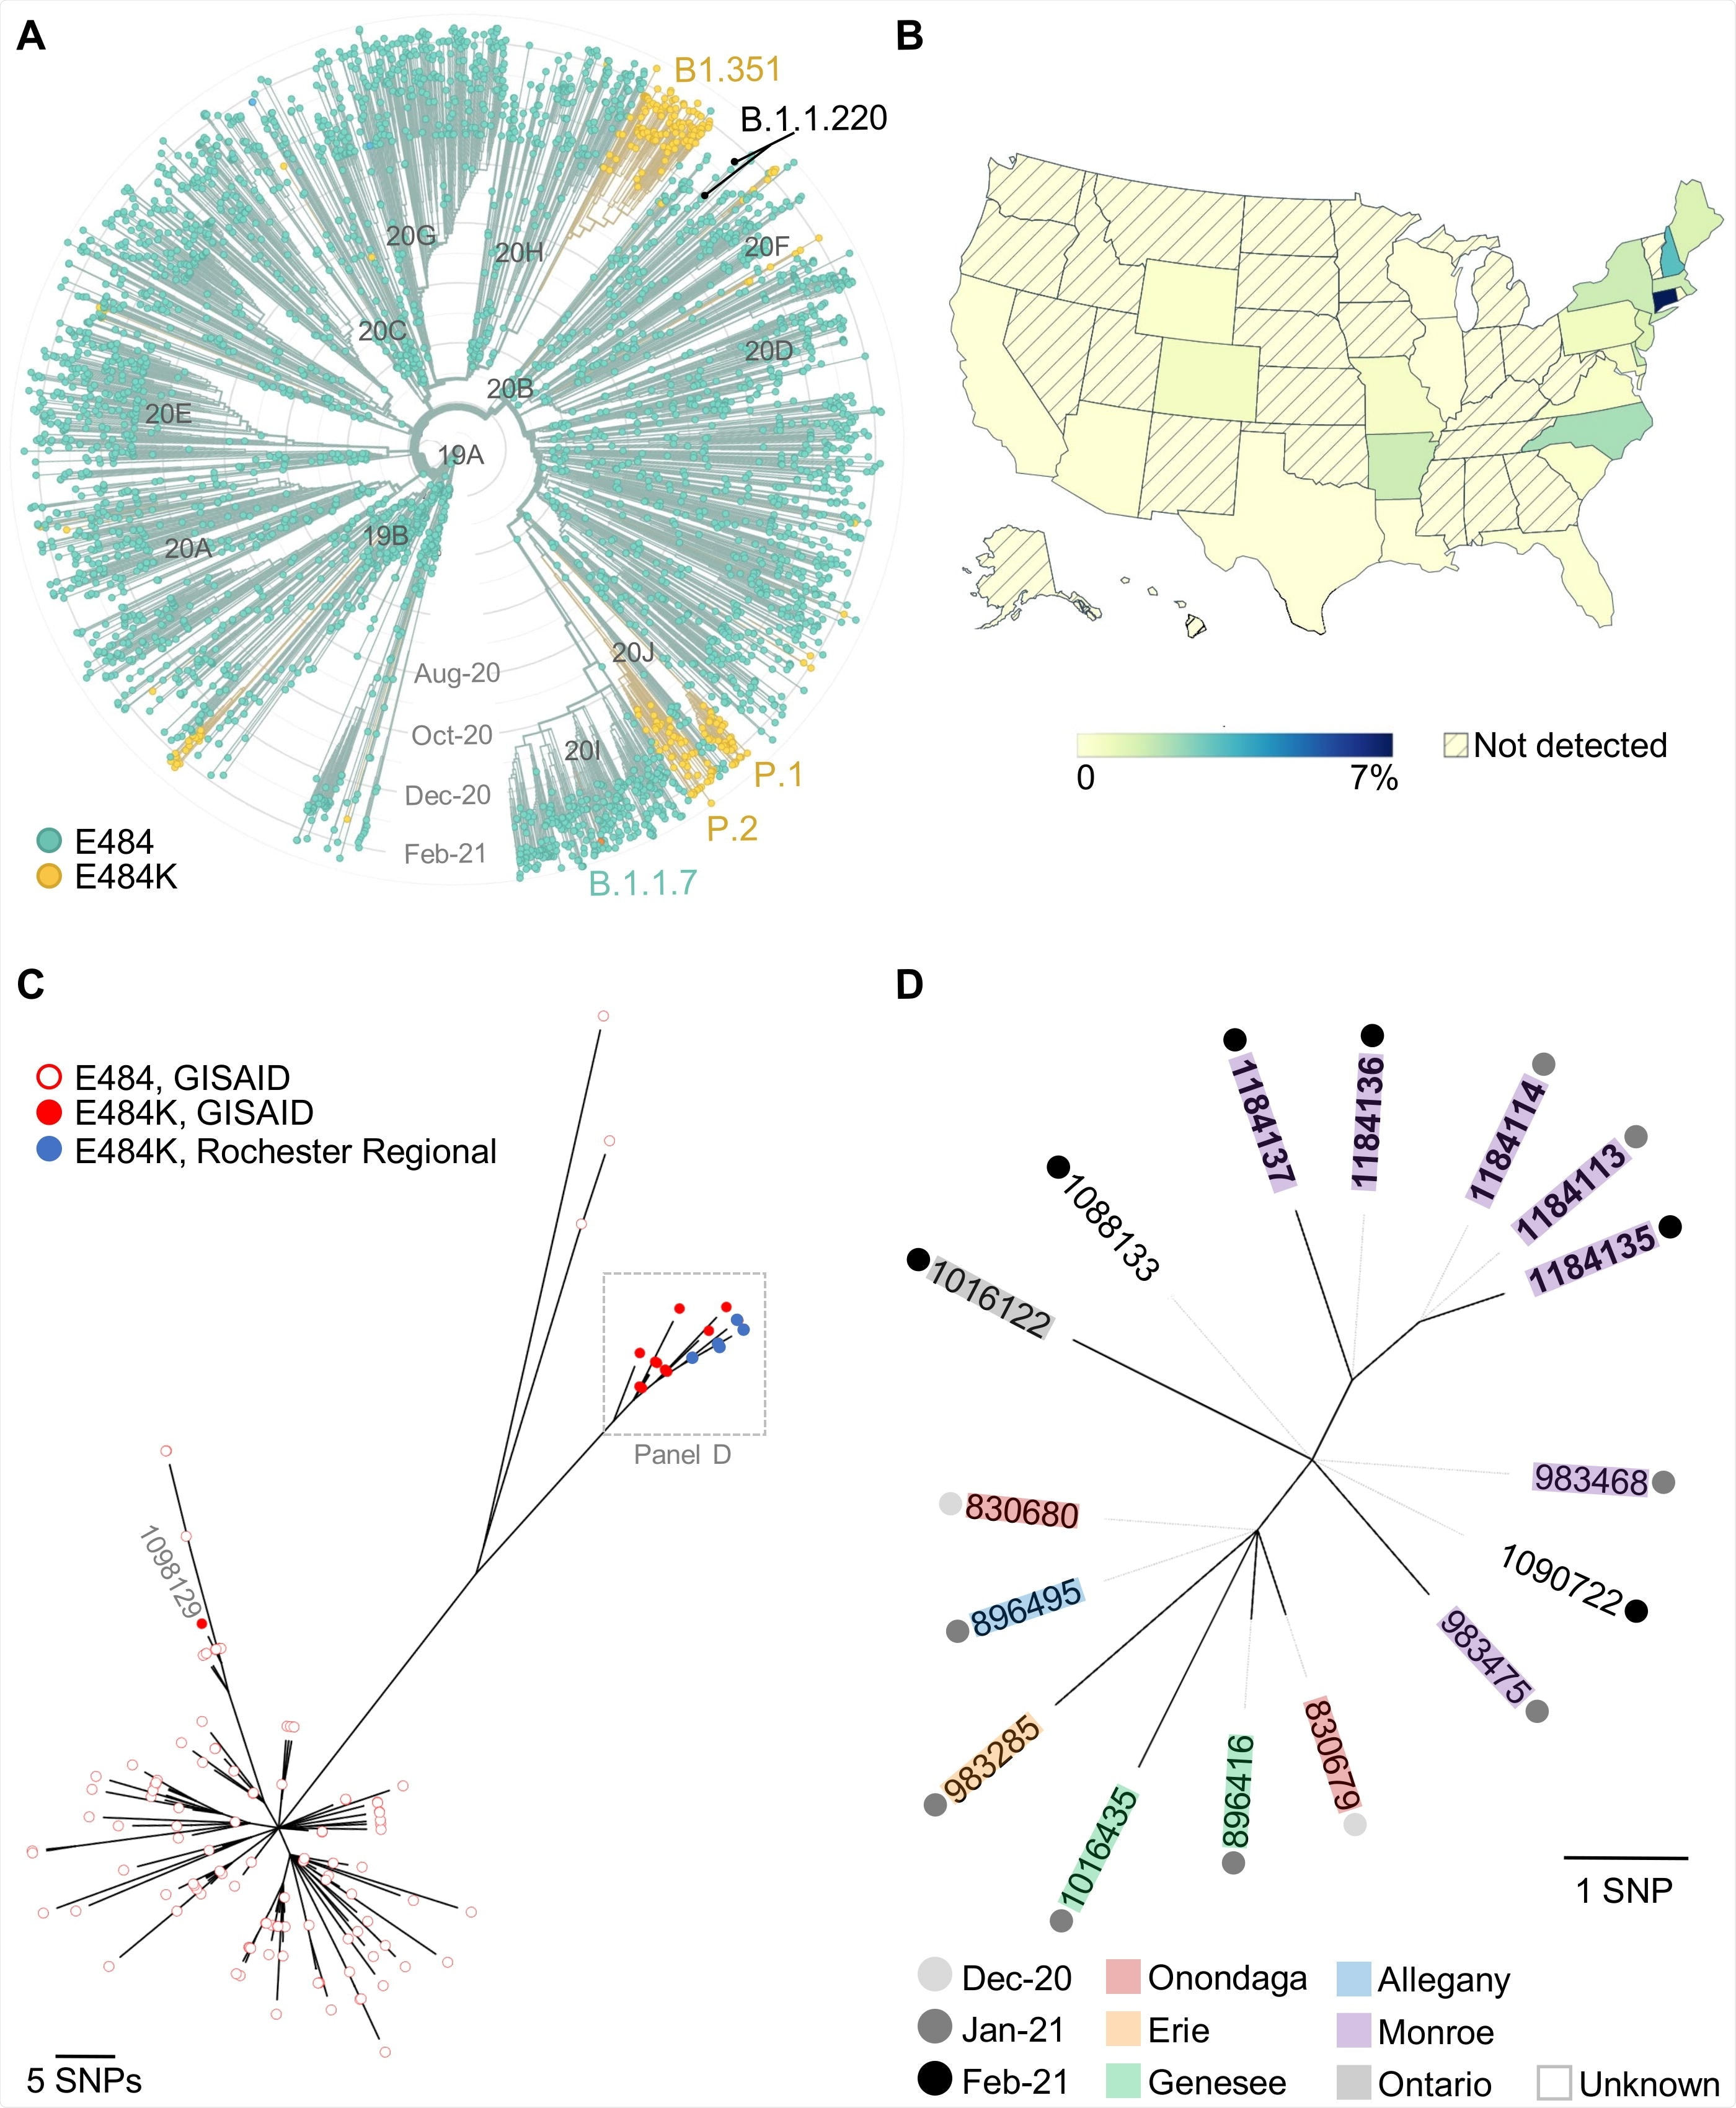 Study: Emergence of the E484K Mutation in SARS-CoV-2 Lineage B.1.1.220 in Upstate New York